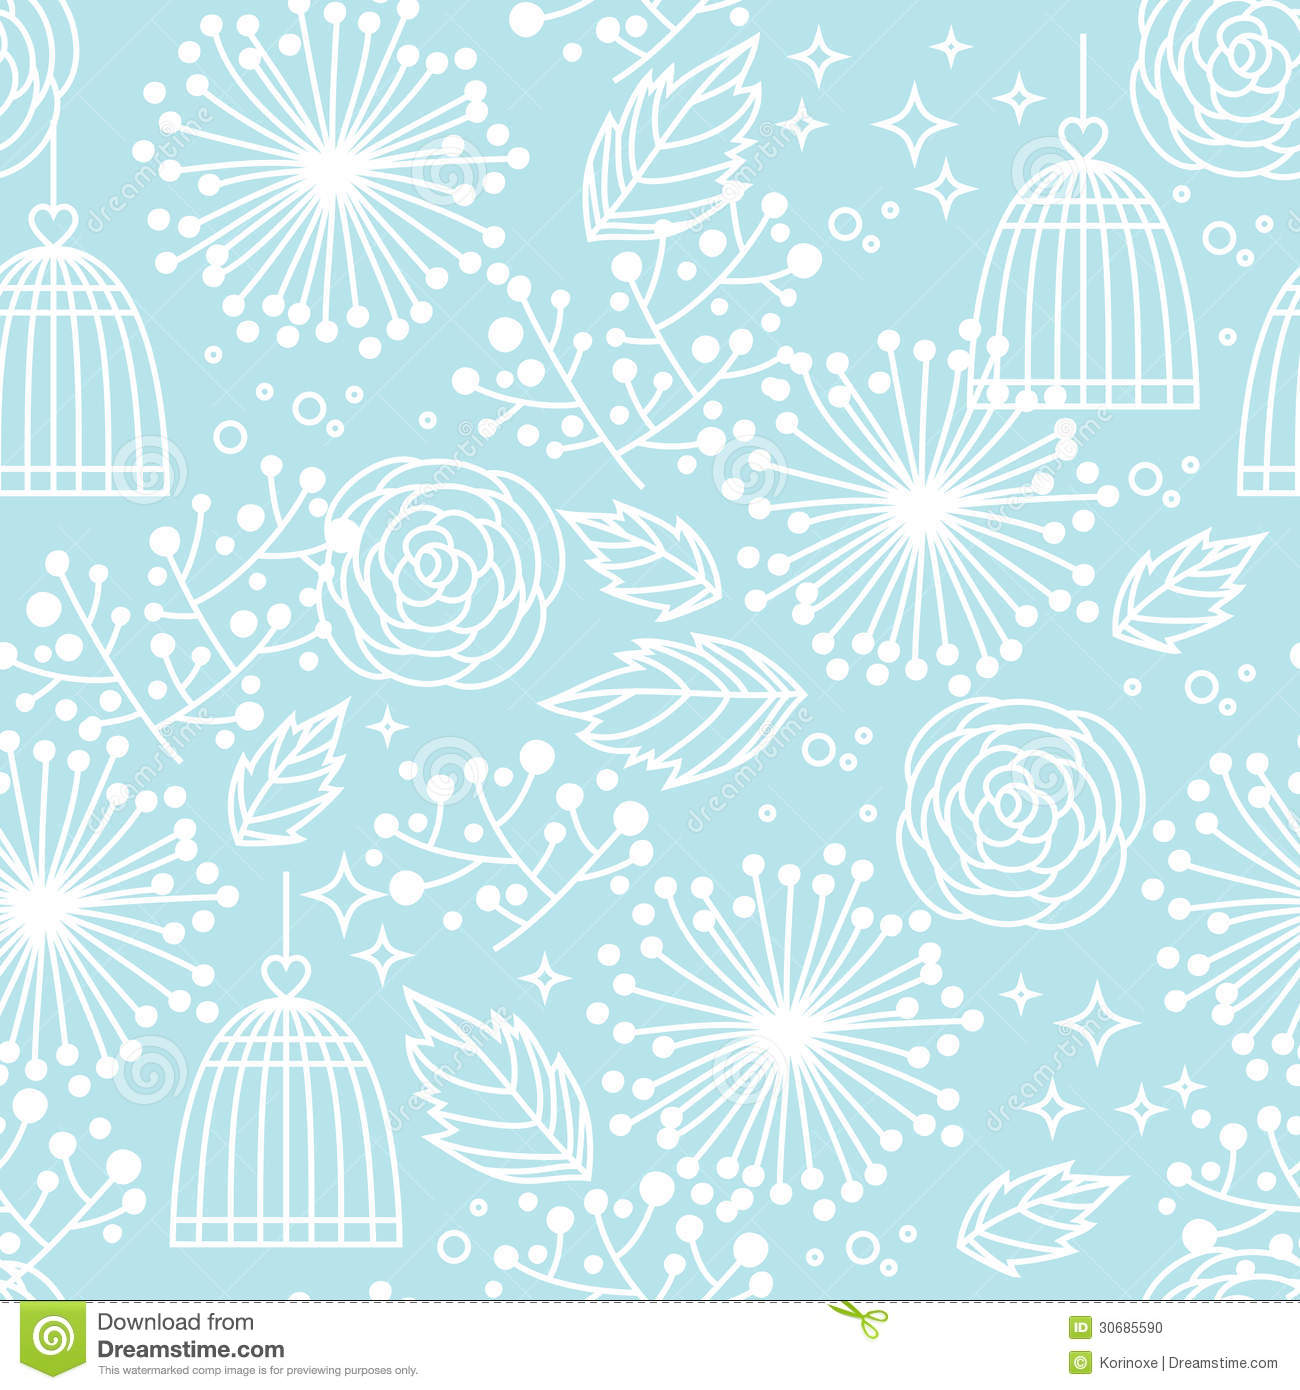 Free Download Blue Seamless Floral Pattern Background White